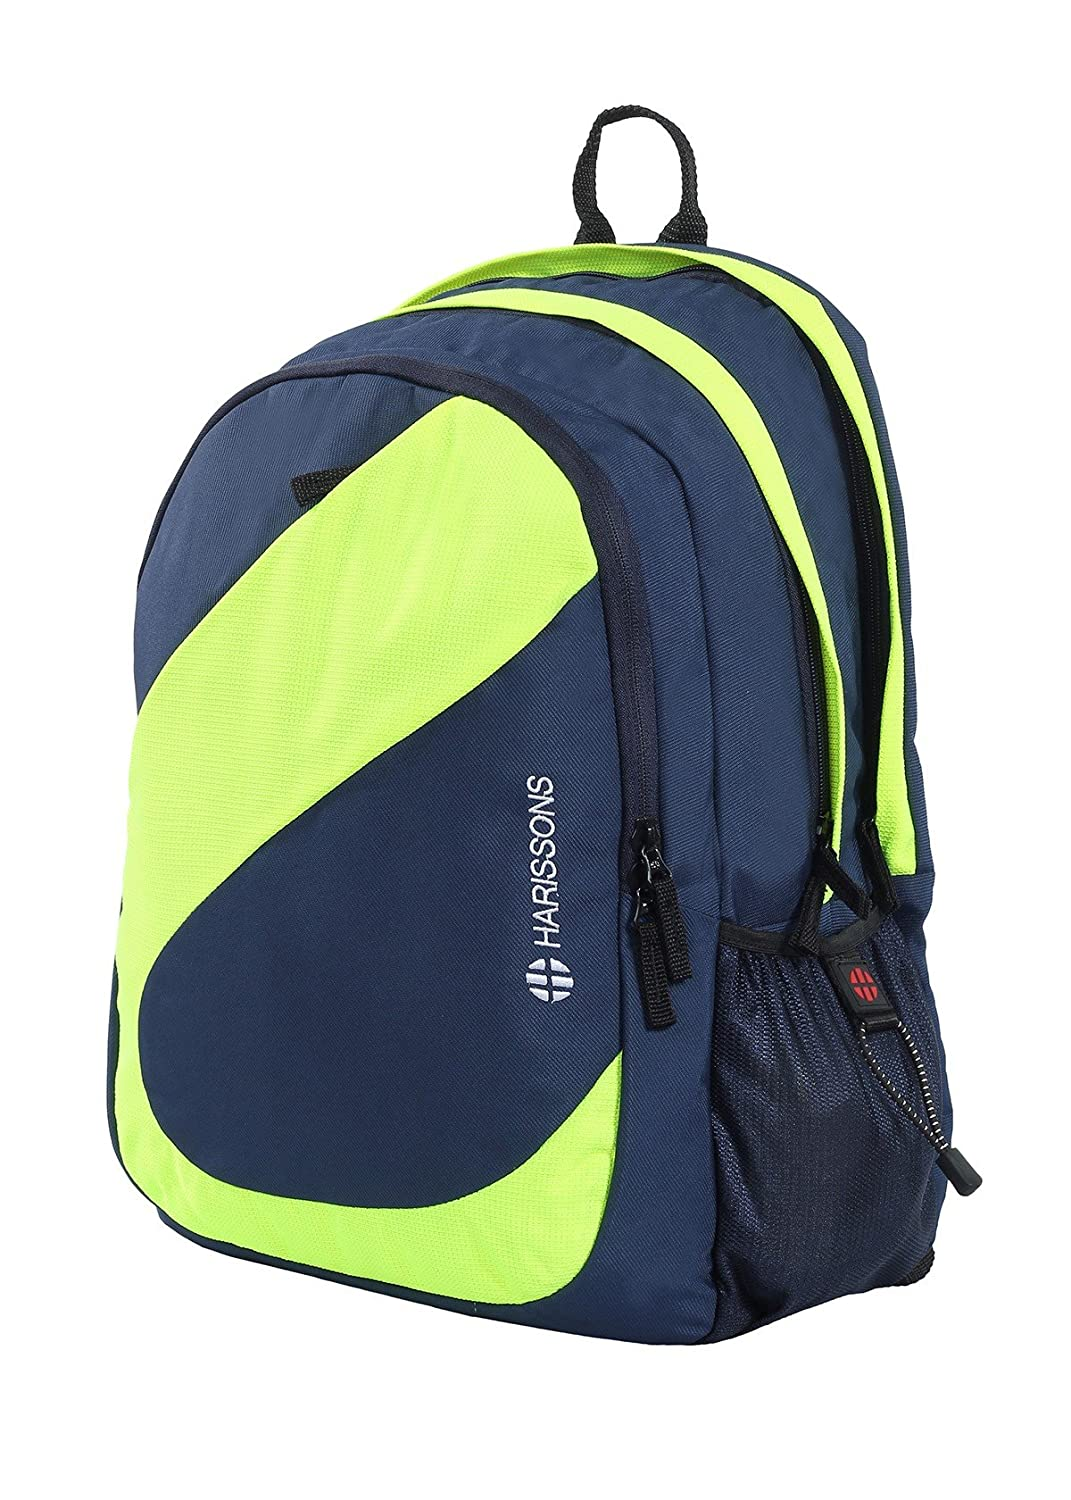 Harissons Bags Easter 38L Big Stylish Backpack (Navy Blue   Green ... 6d9a7f63aced4